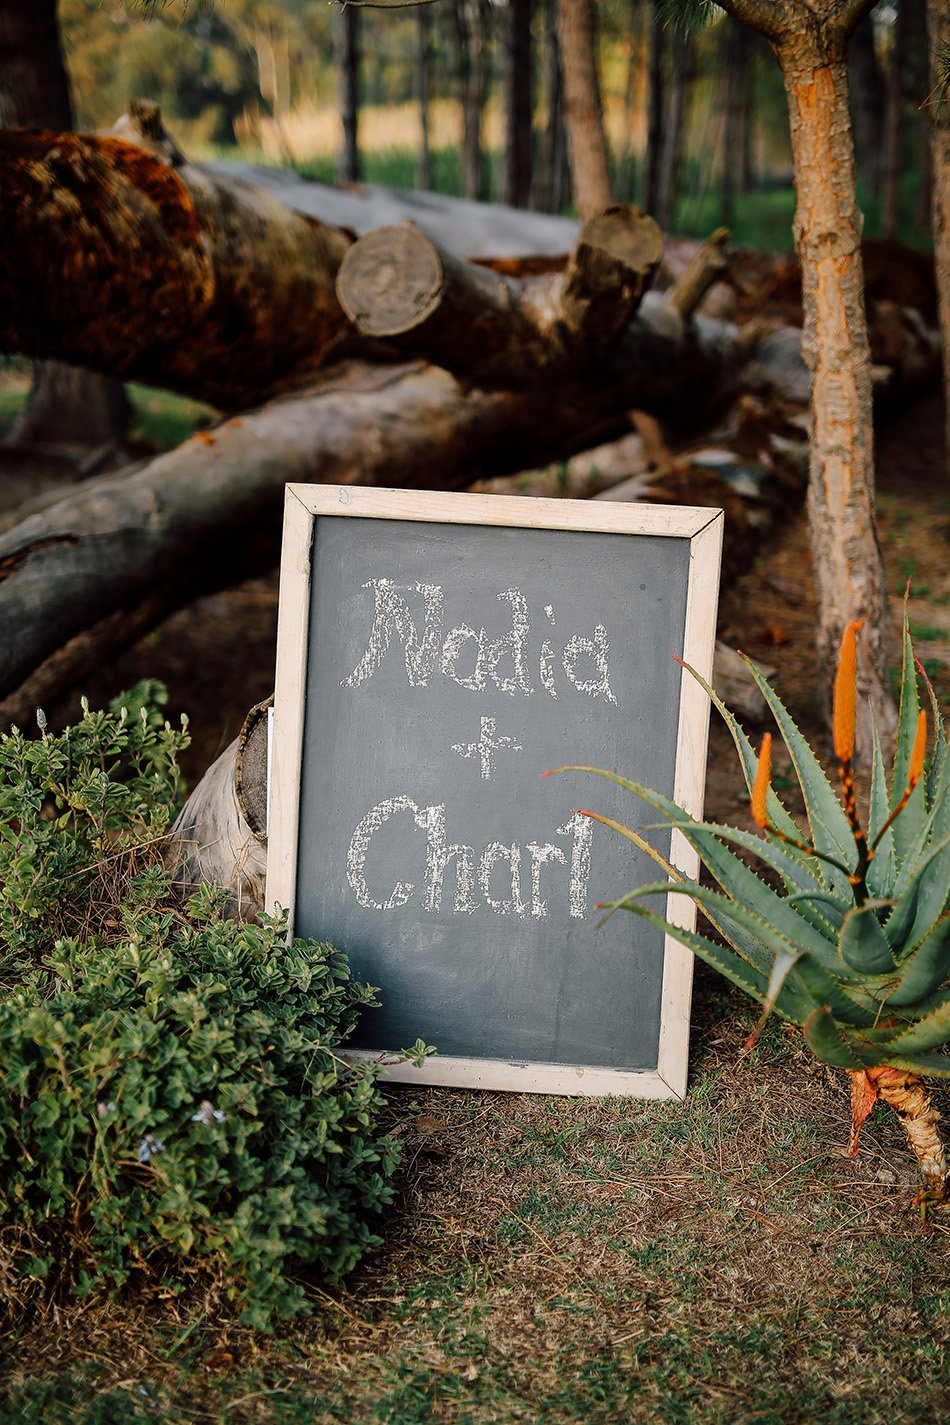 Nadia&Charl {Married@Winery Road Forest, R44}-2008